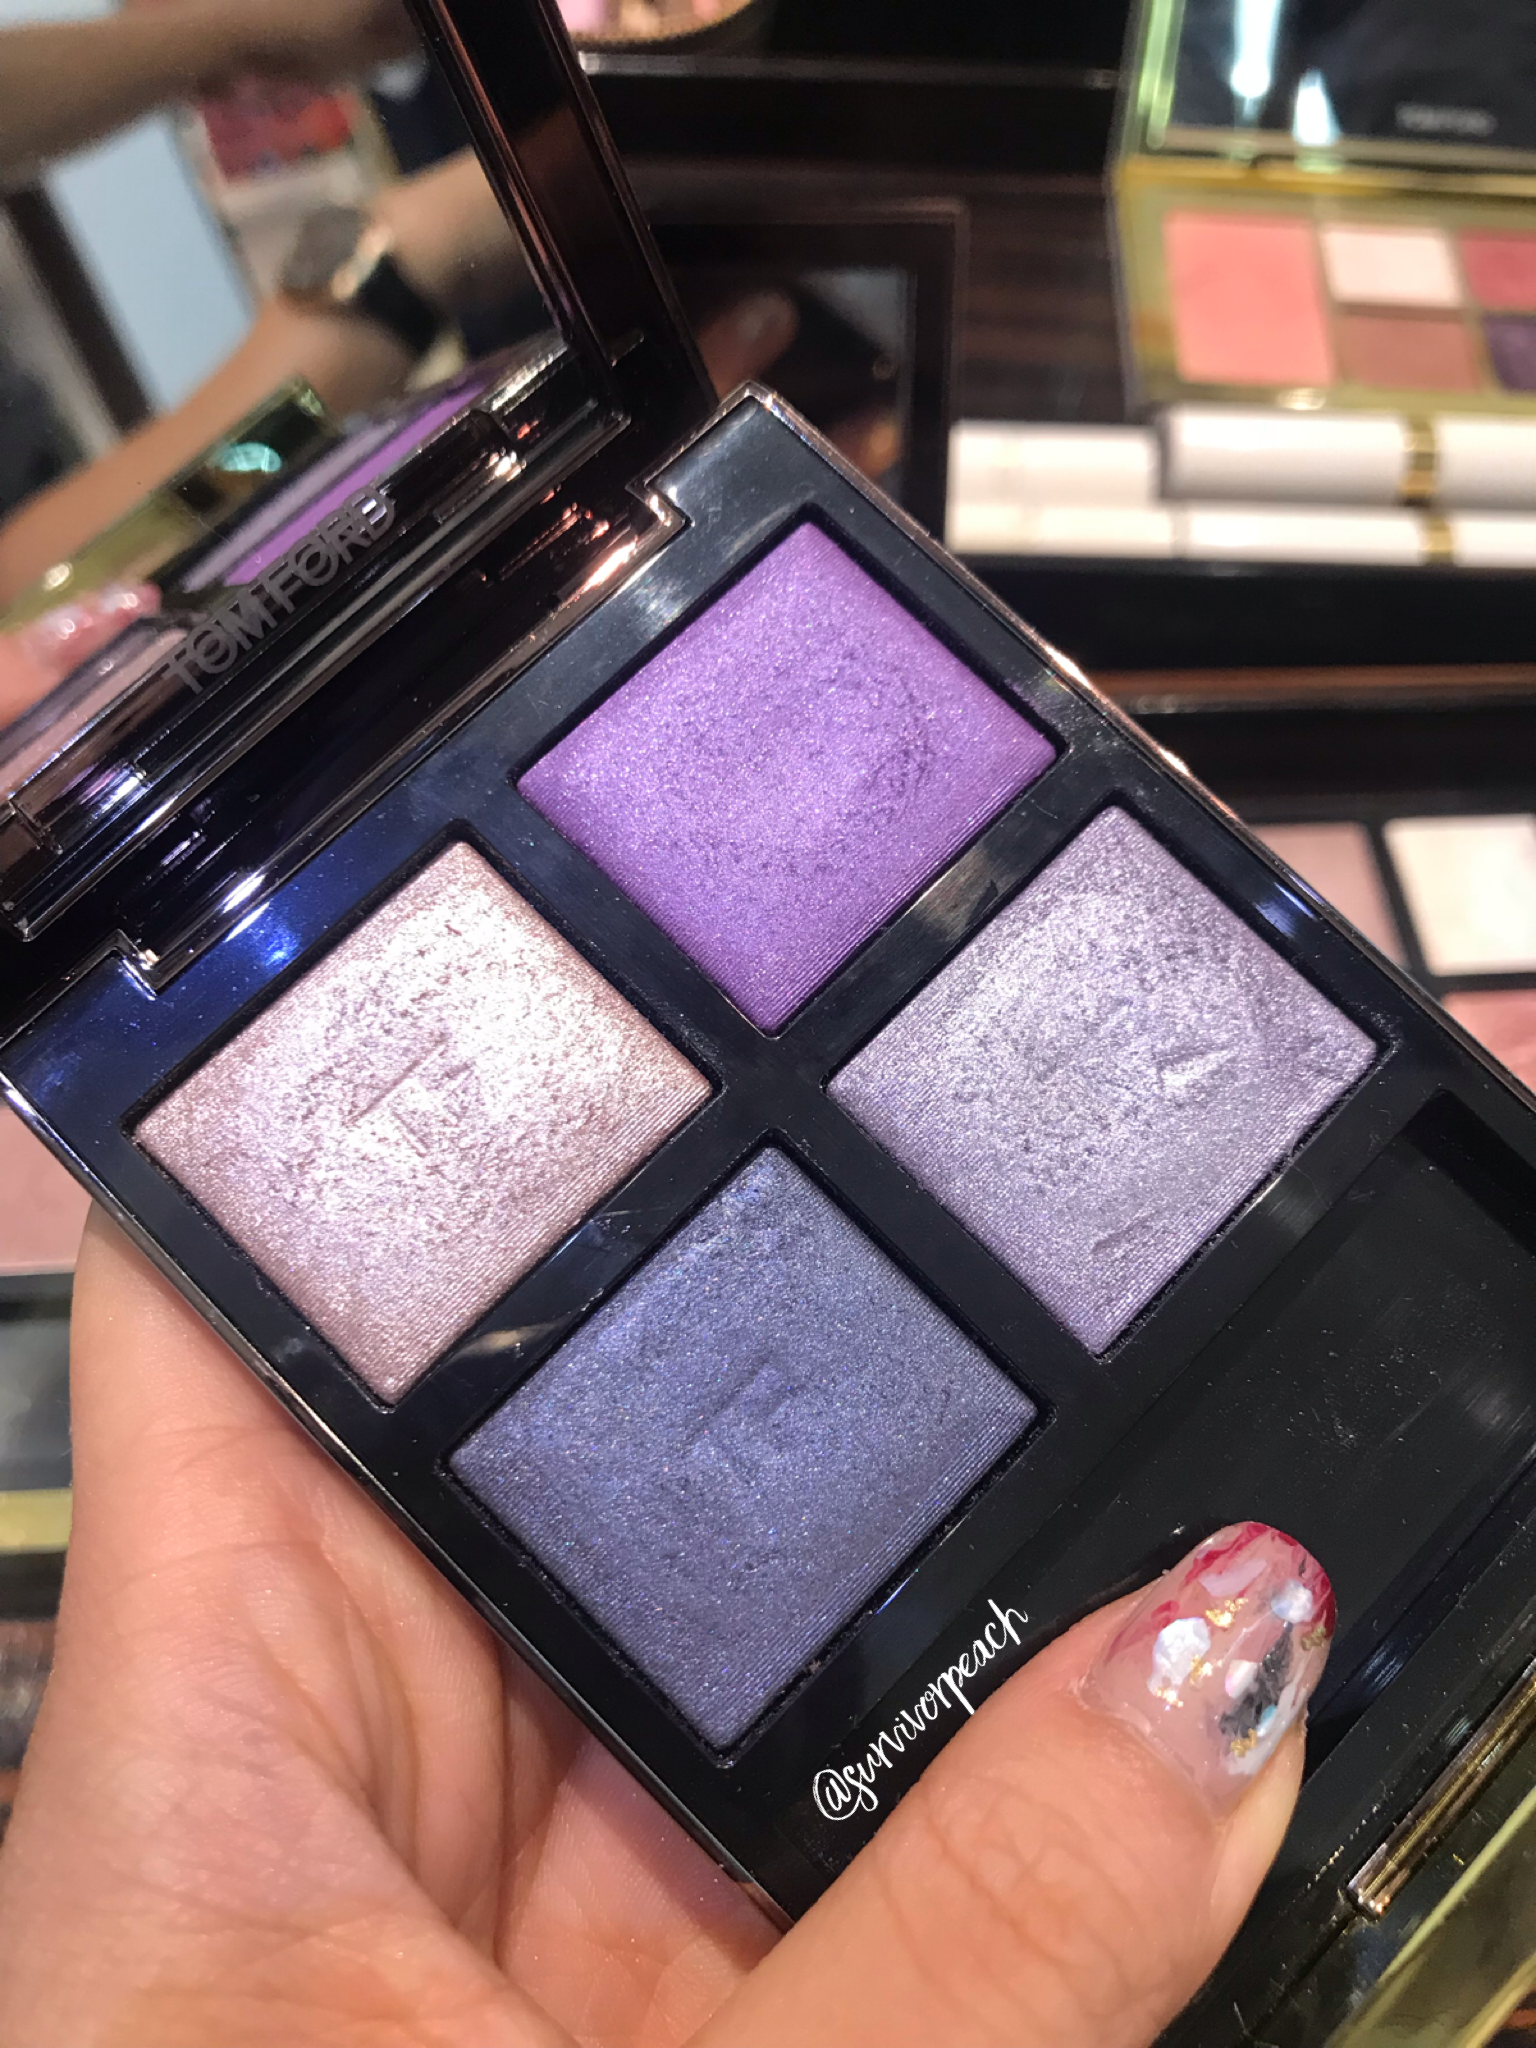 Tom Ford Eye Quad in 28 Day Dream